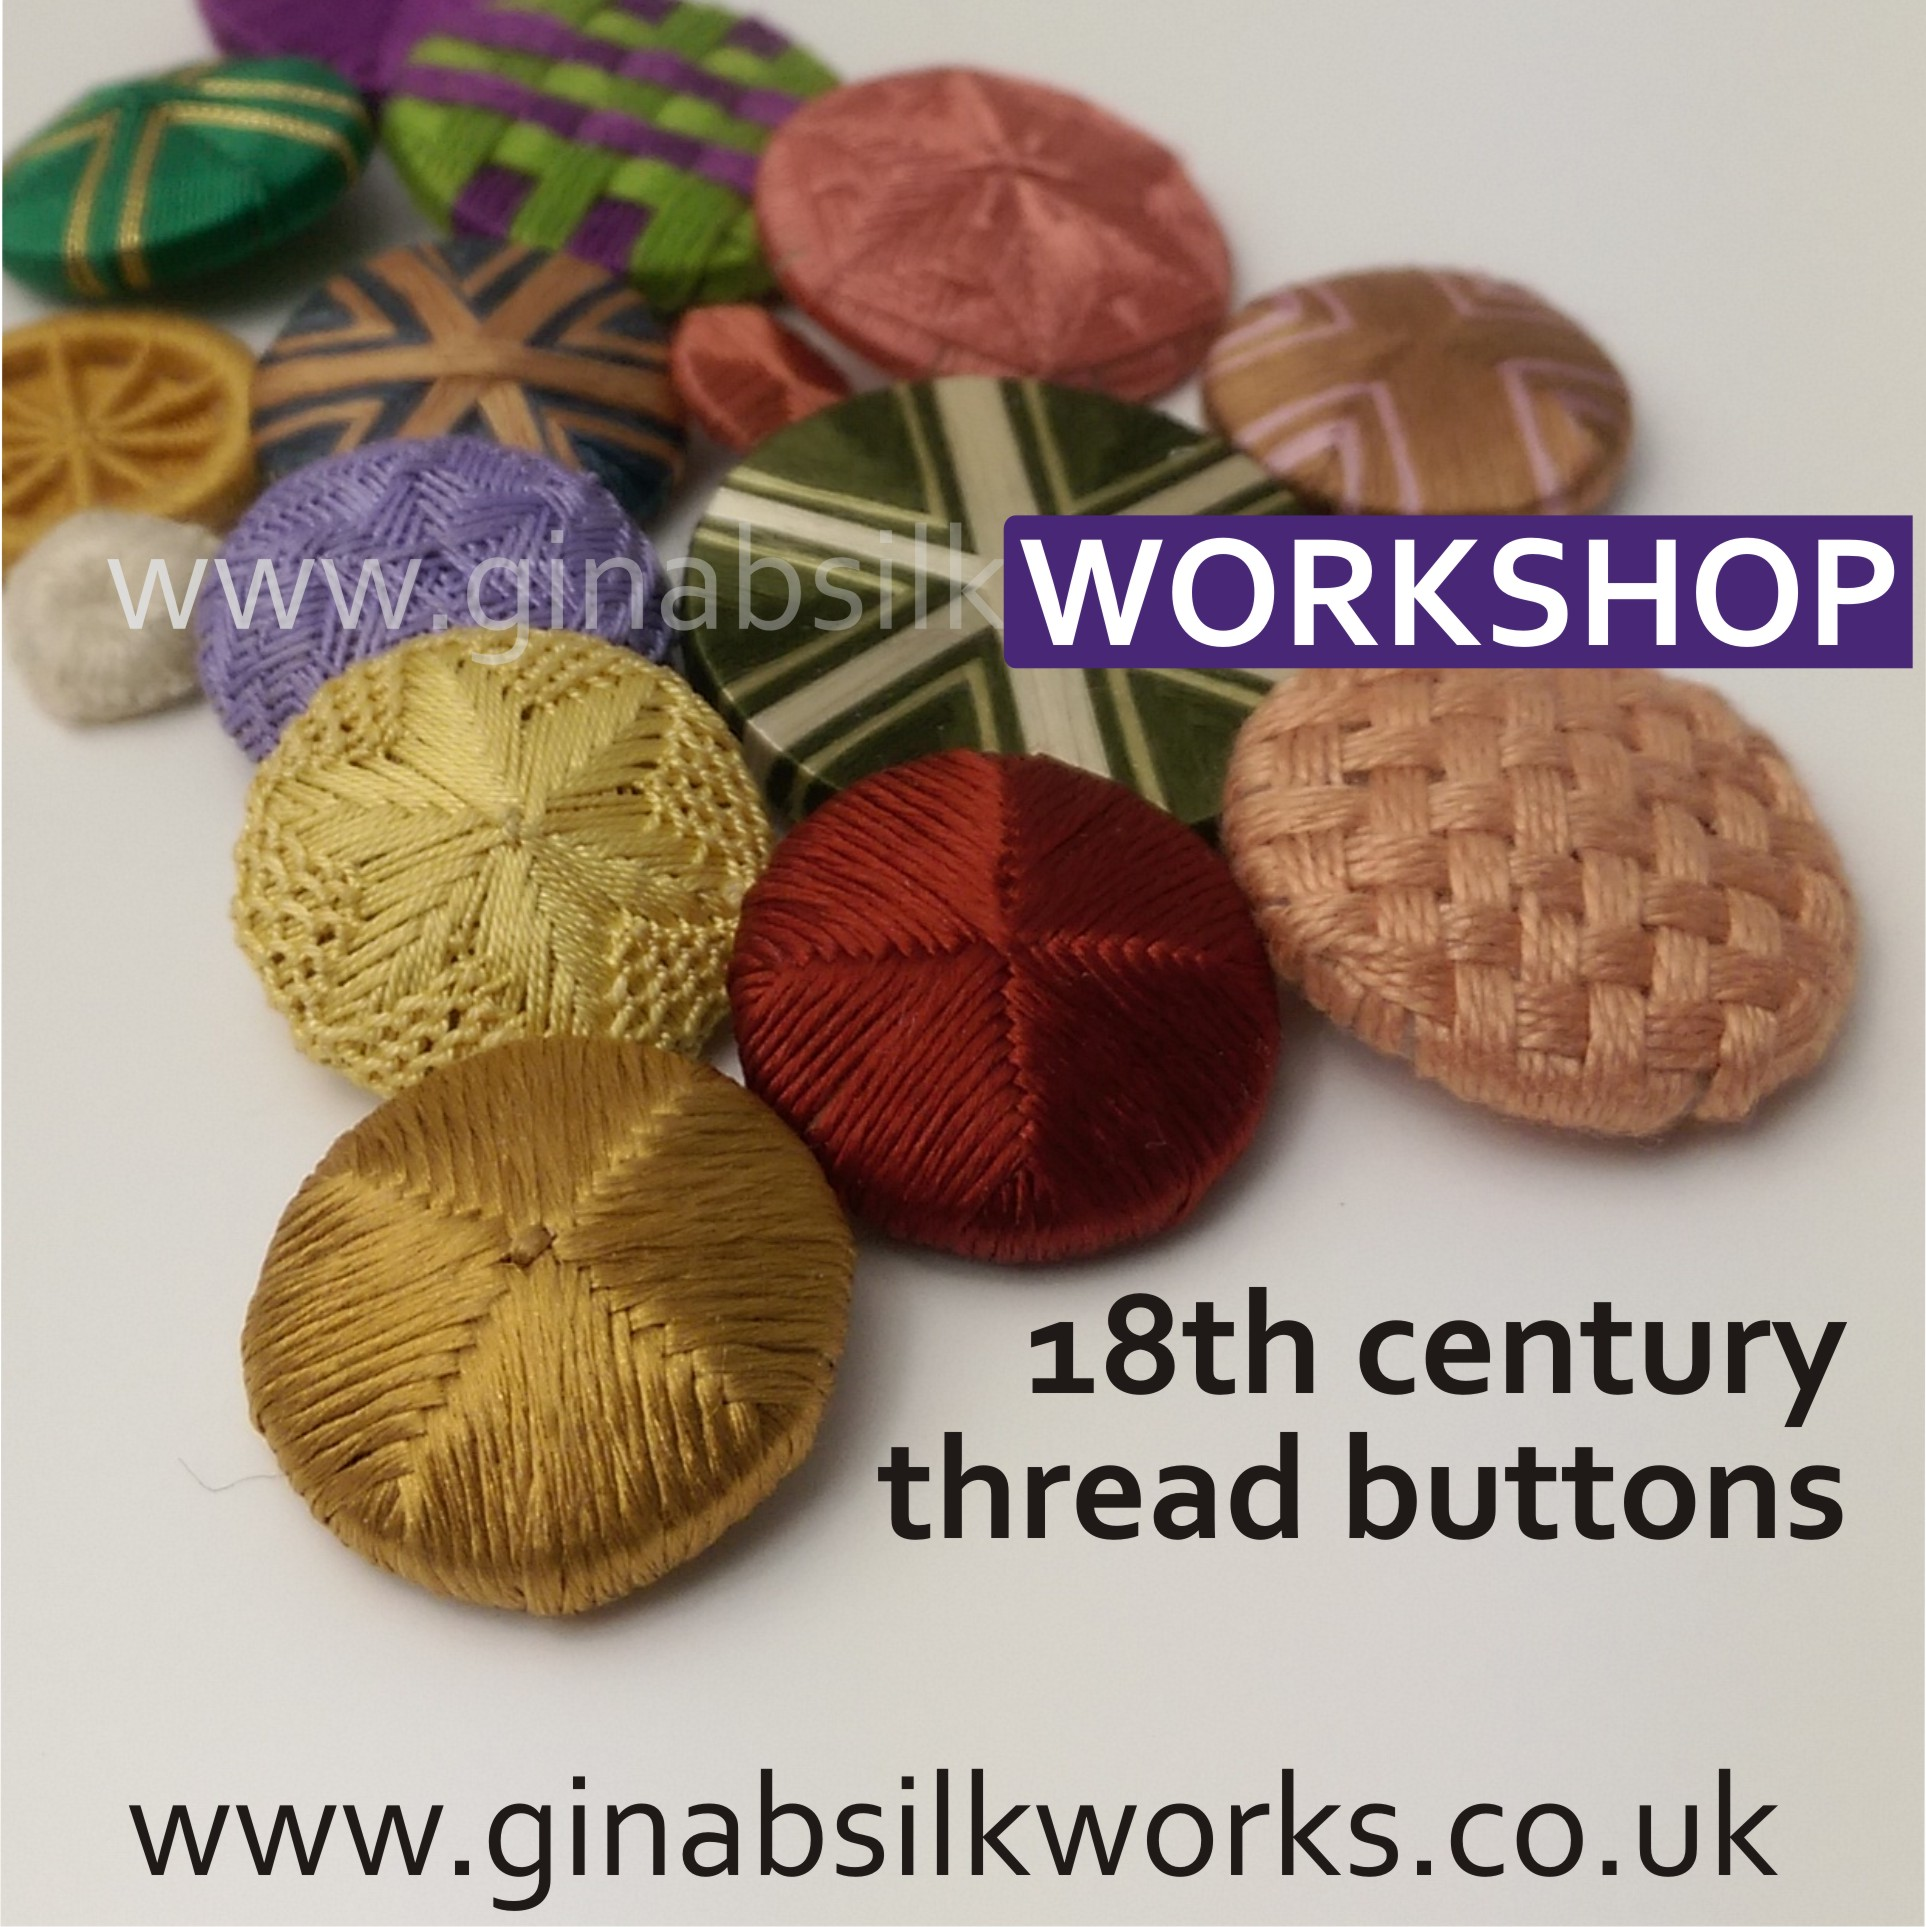 18th Century Thread Buttons Workshop